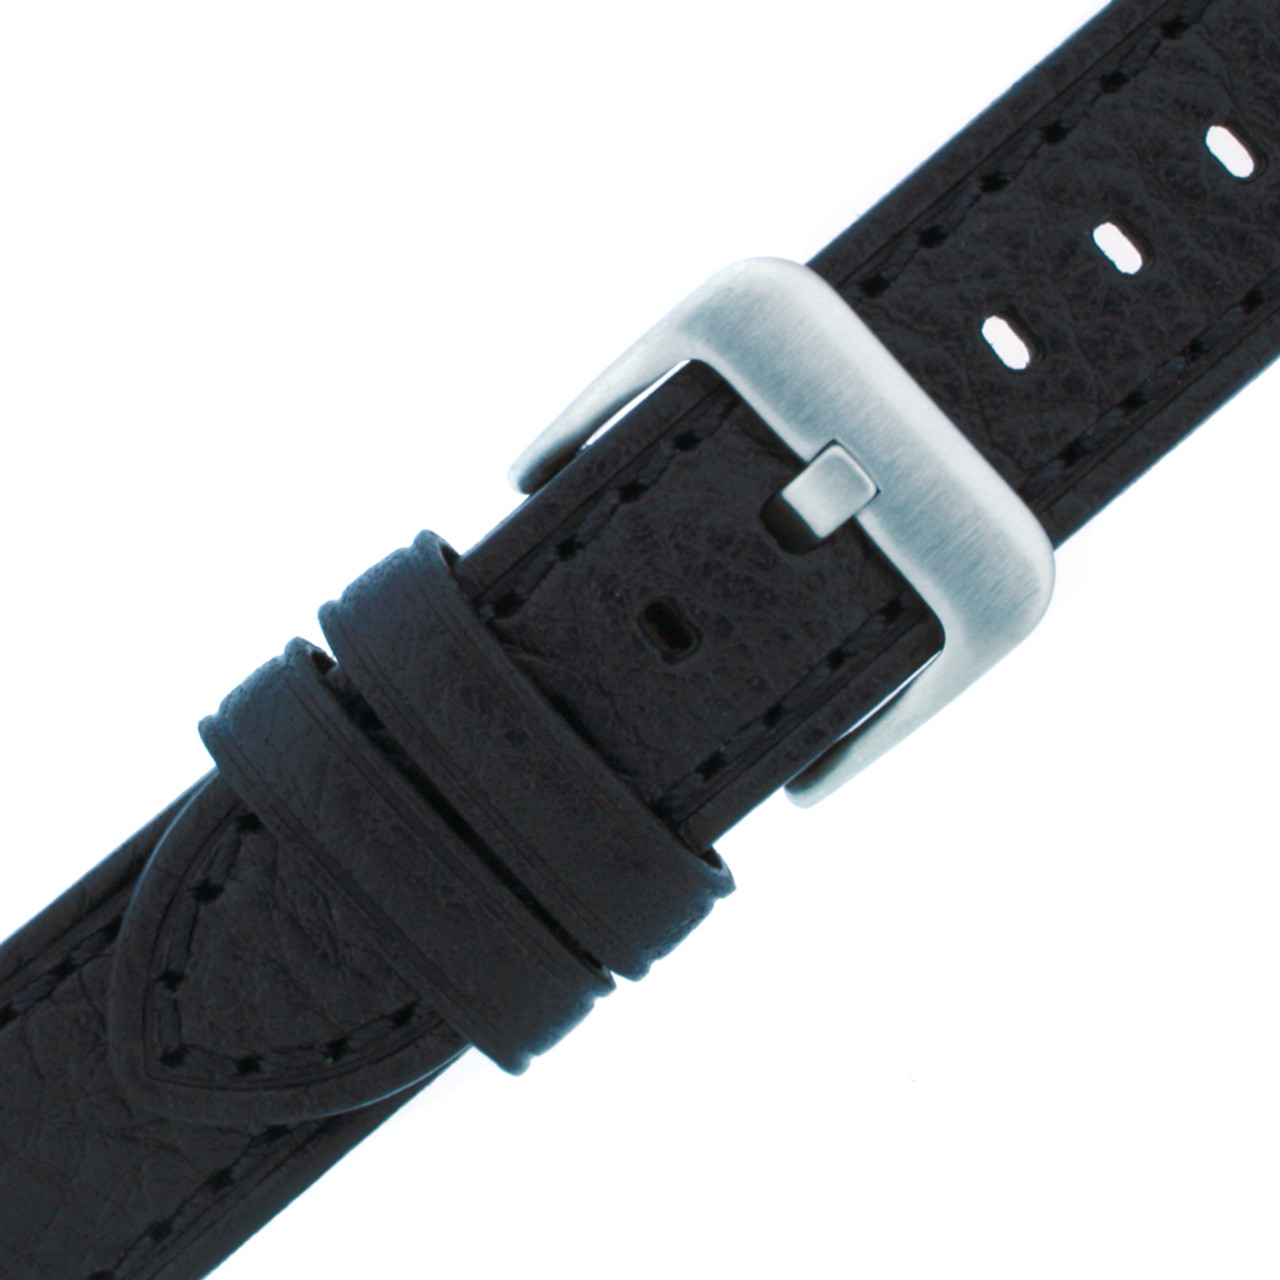 Black Watch Band - Buckle View